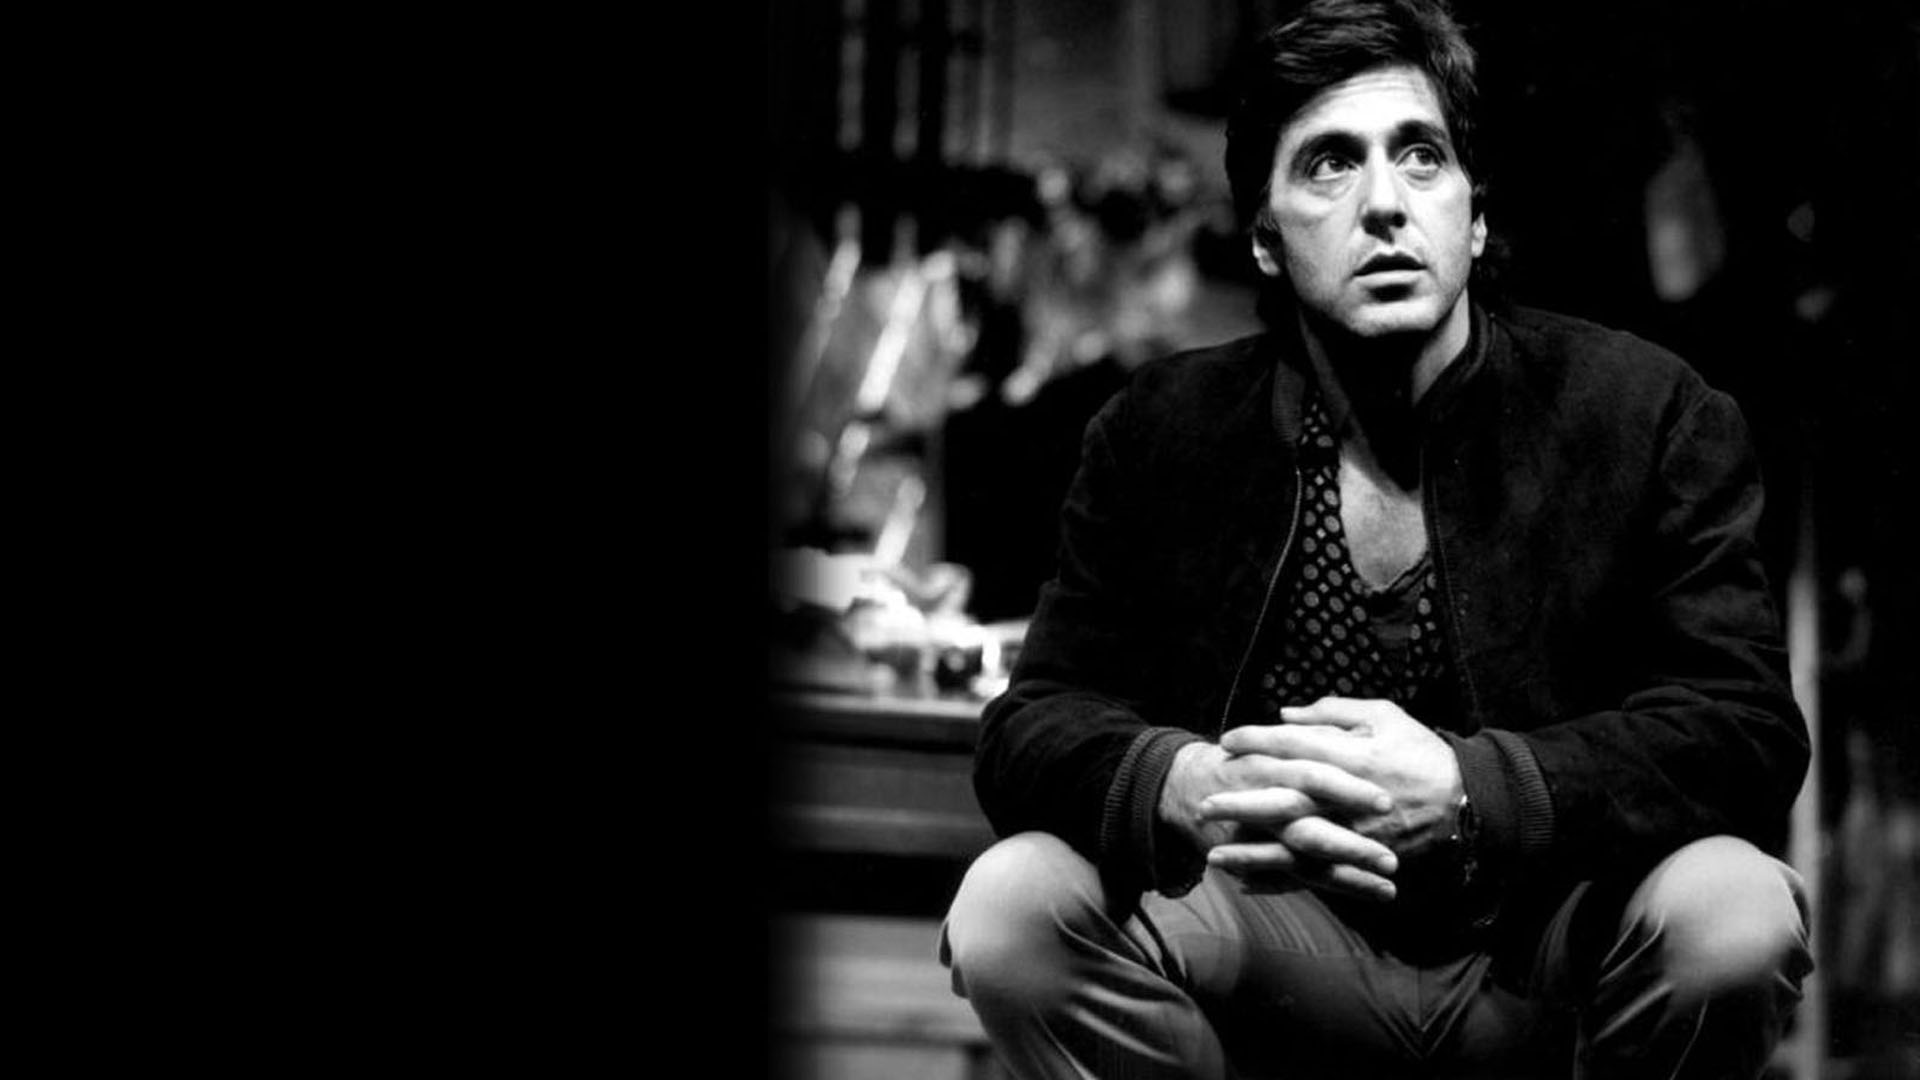 Gangster Quotes Facebook Wallpaper Al Pacino Wallpapers High Quality Download Free